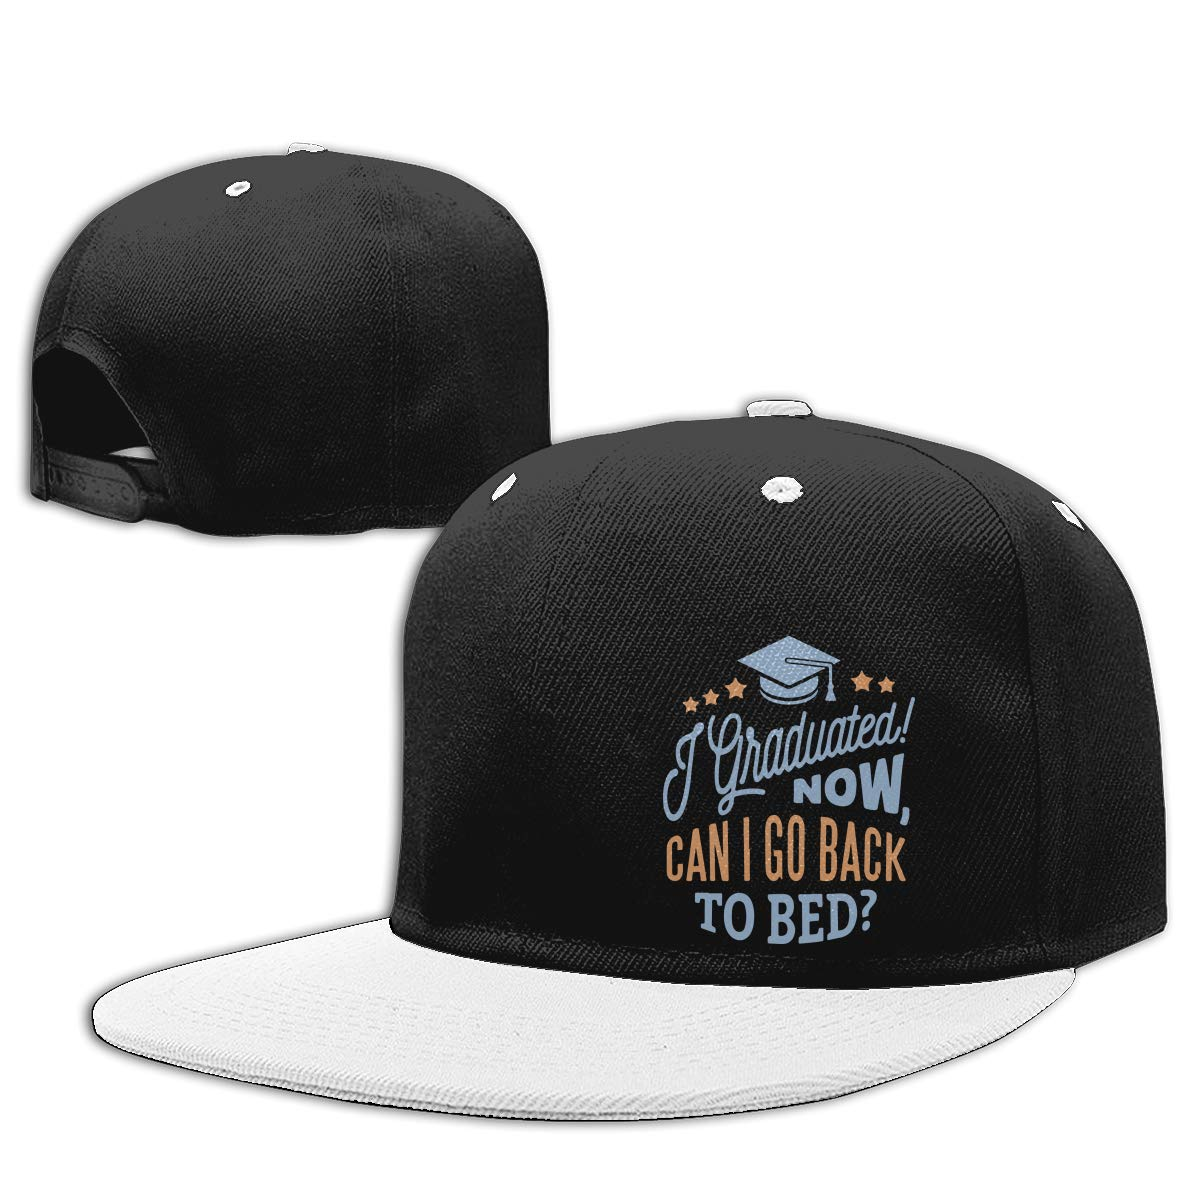 Funny Graduation Unisex Hip-Hop Baseball Caps NMG-01 Women Men Plain Cap